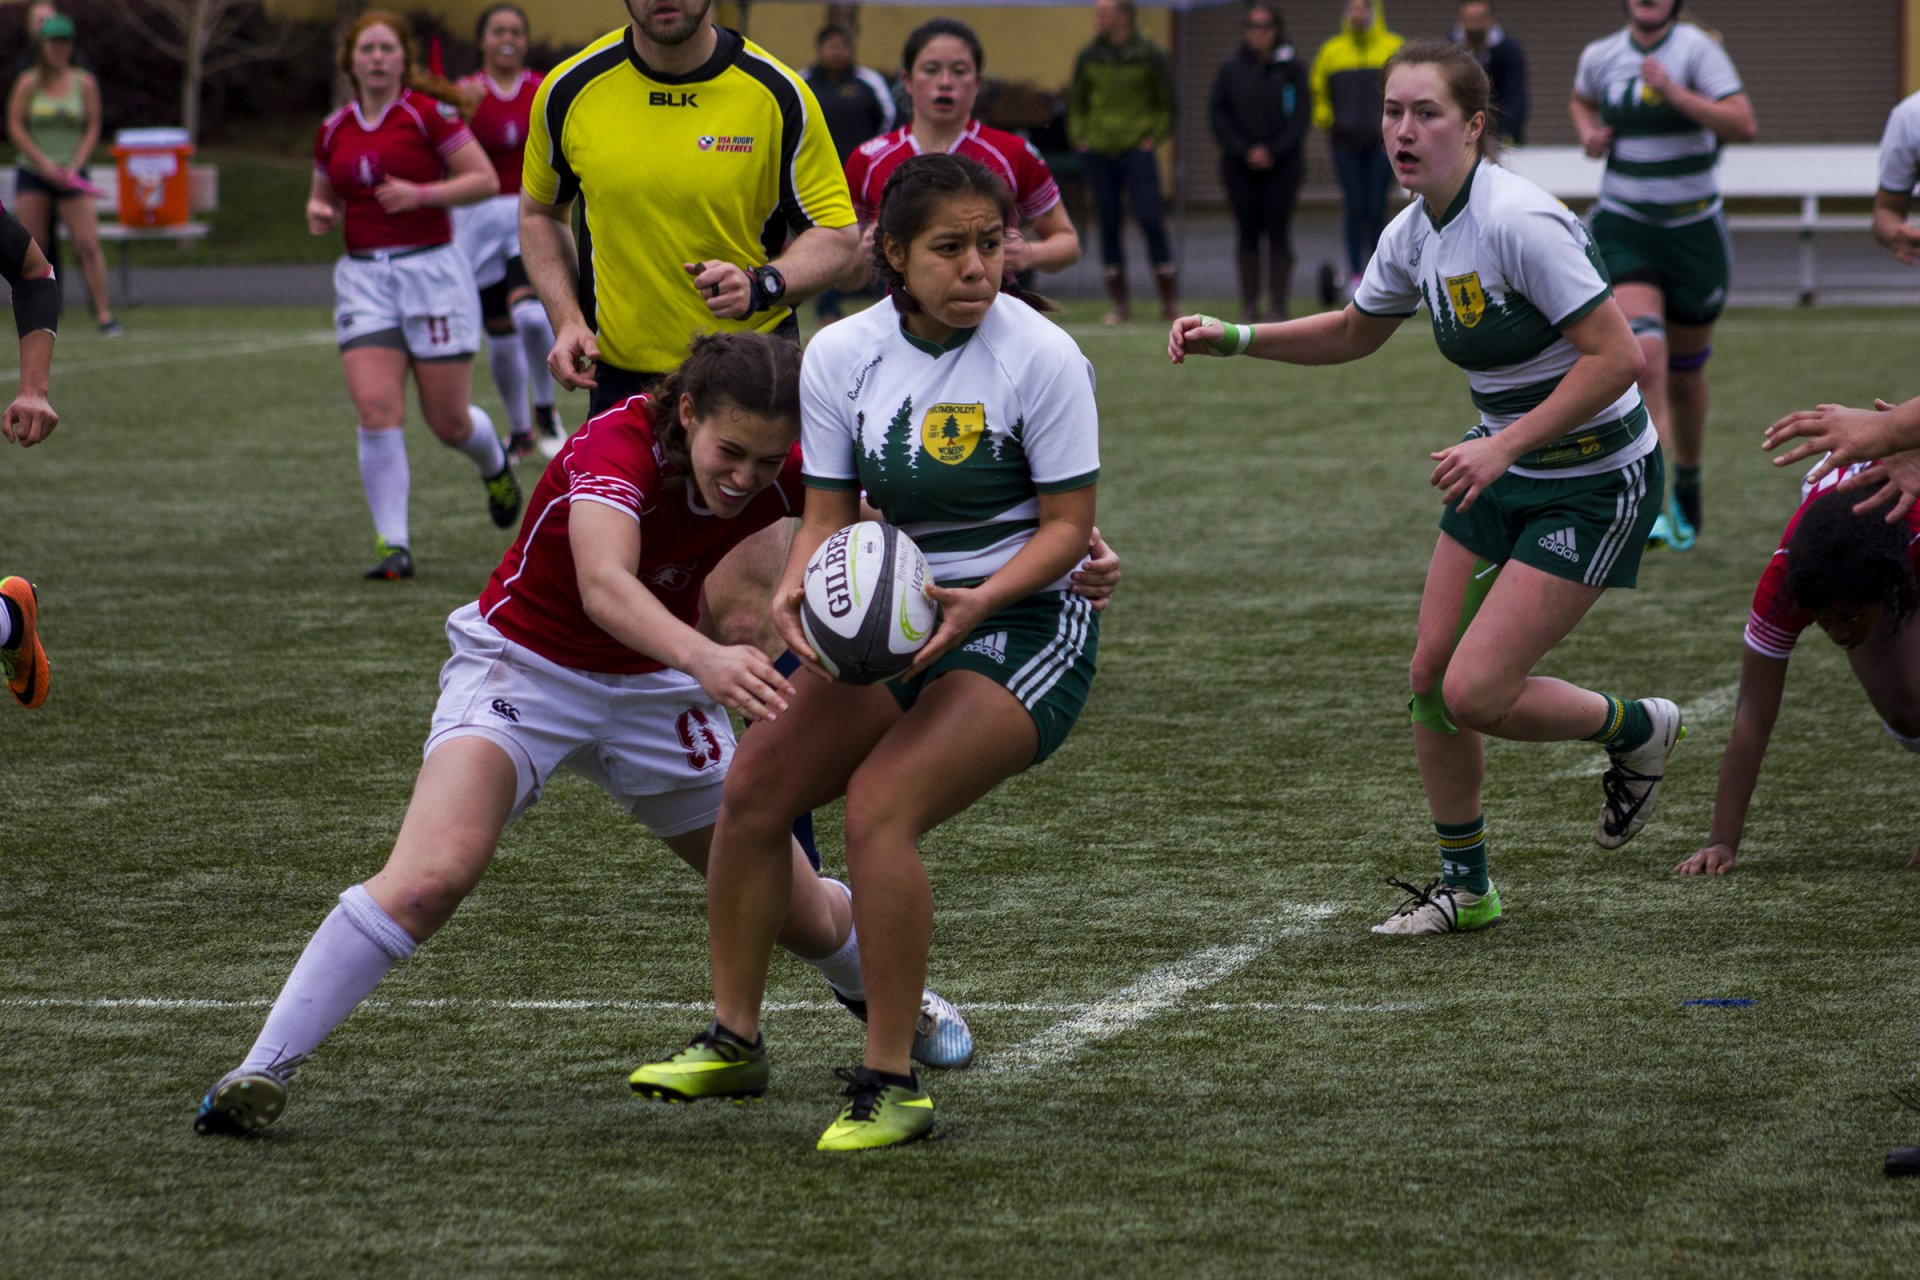 Vianey Figueroa looks to lateral the ball to a Humboldt State teammate in anticipation of a Stanford University tackle on the College Creek Field on Feb.11. Photo by Diego Linares.